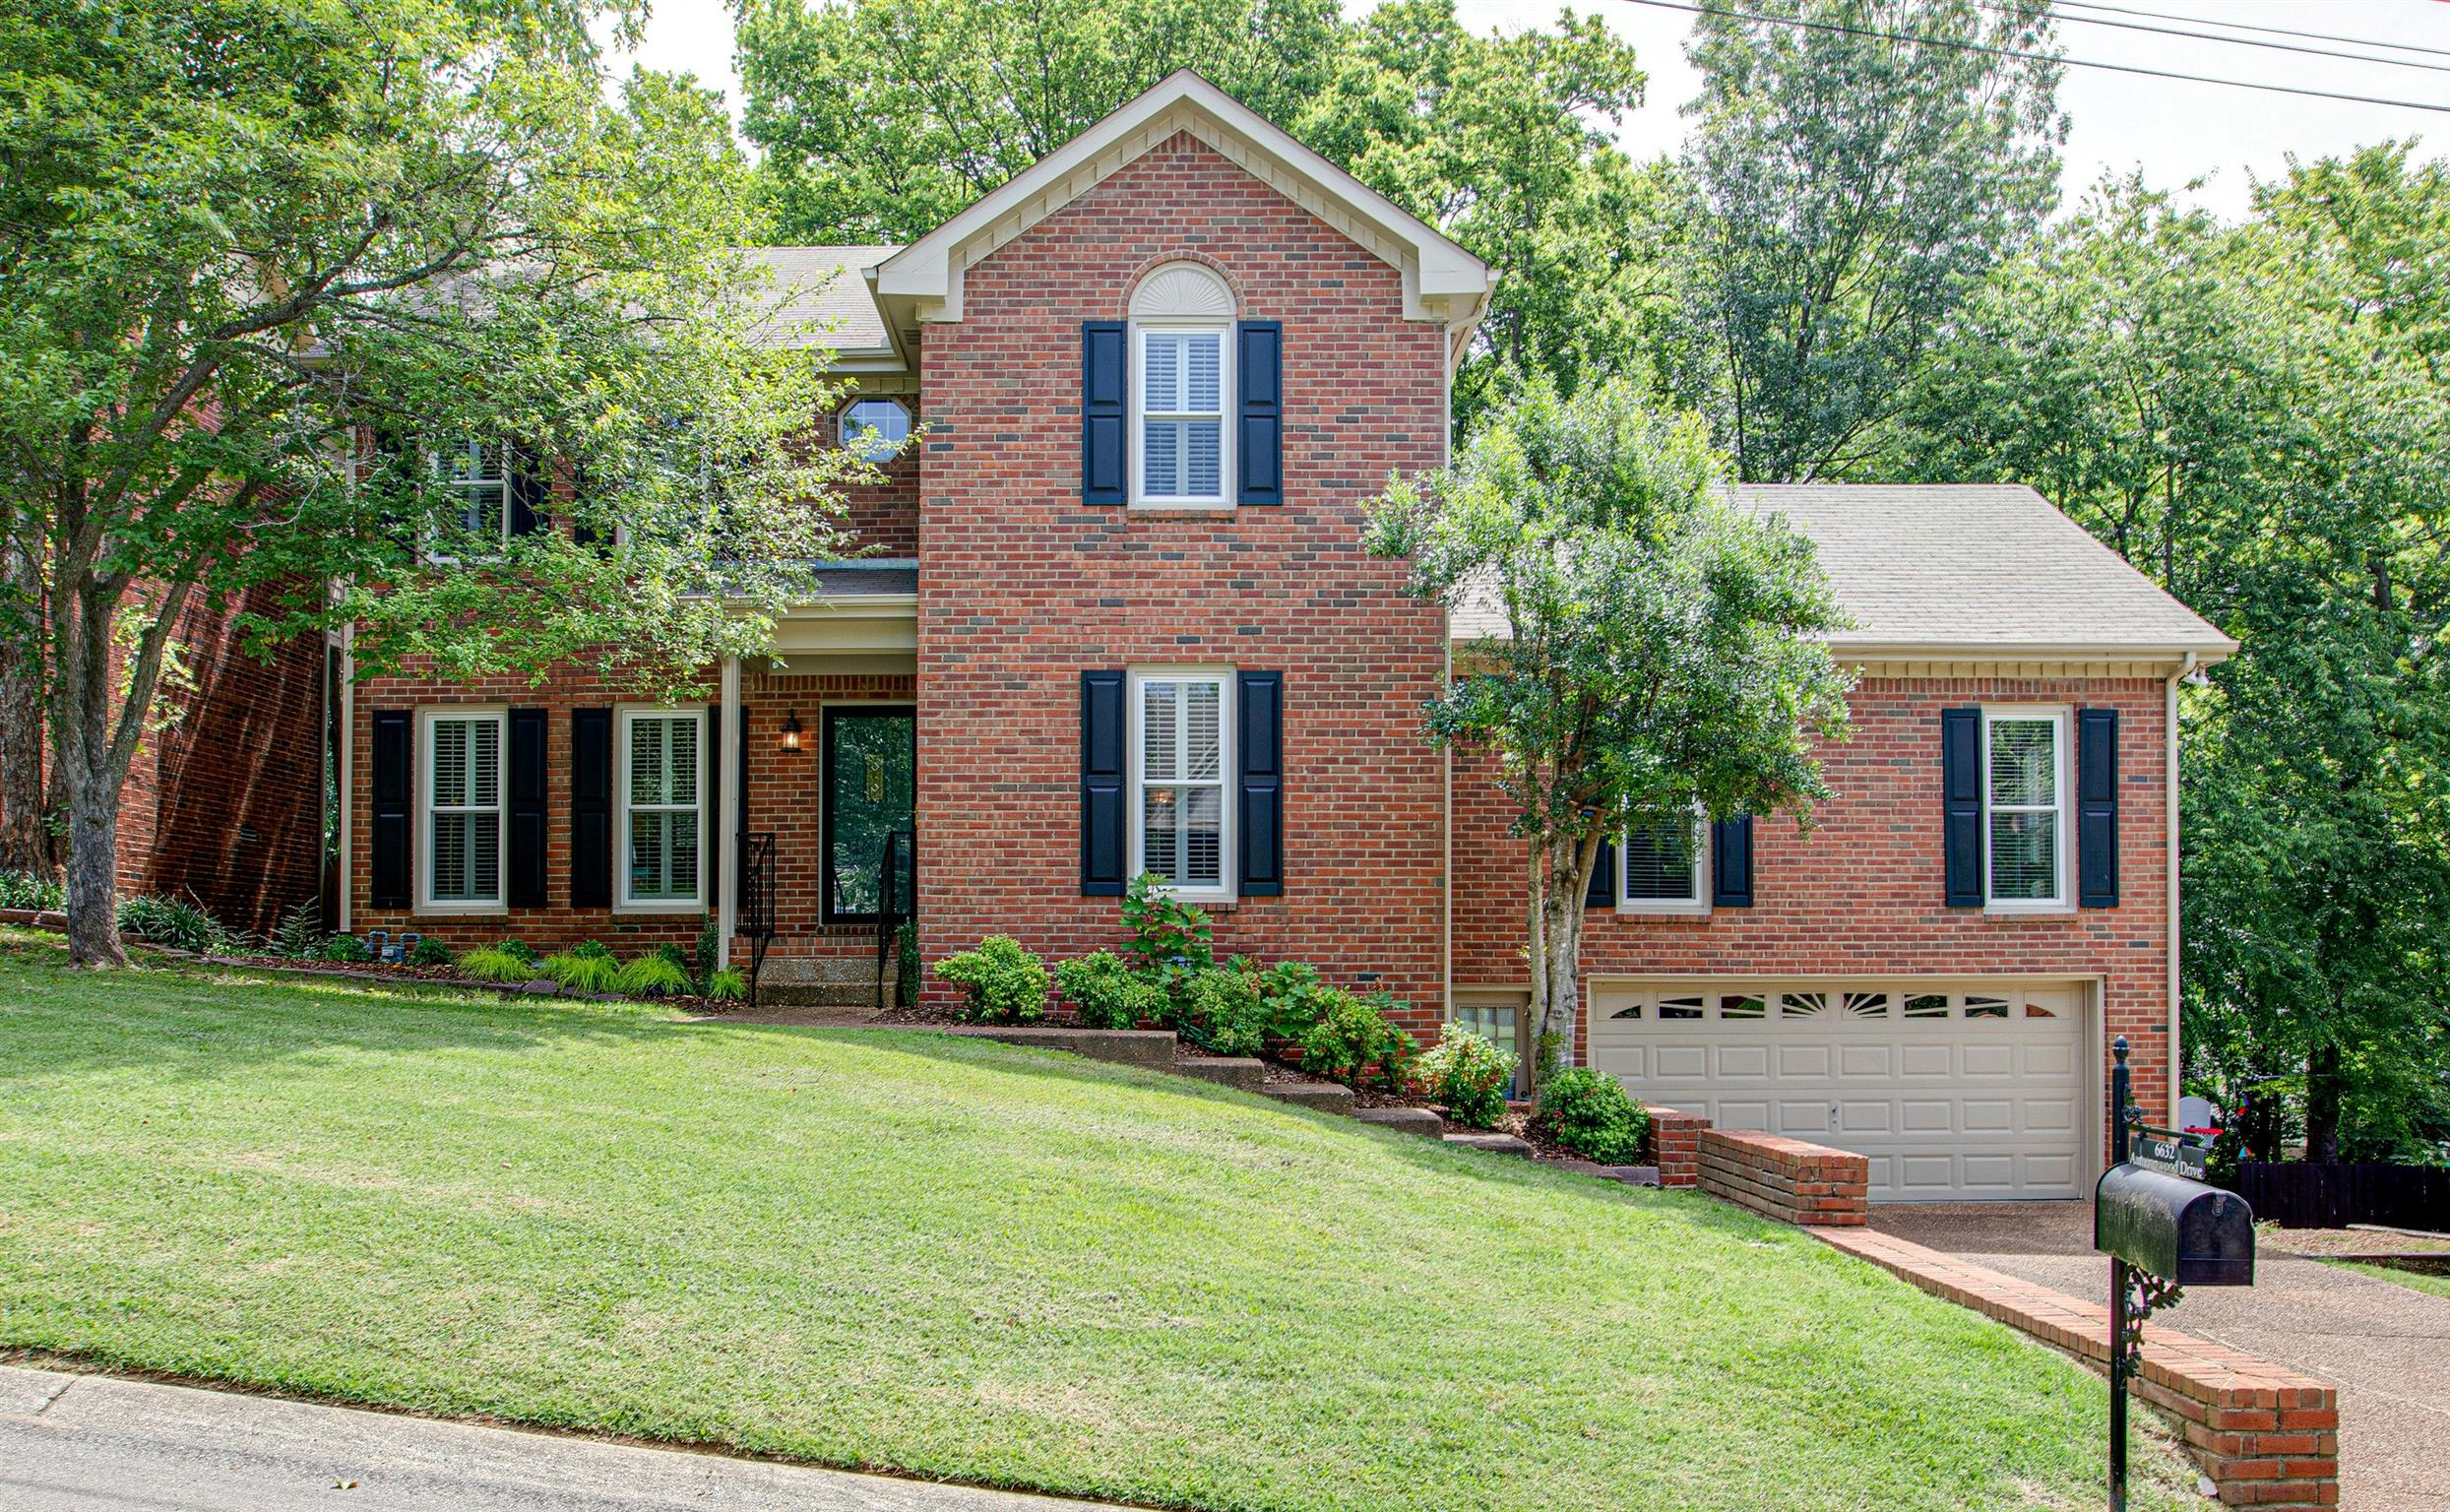 6632 Autumnwood Dr, Bellevue in Davidson County County, TN 37221 Home for Sale